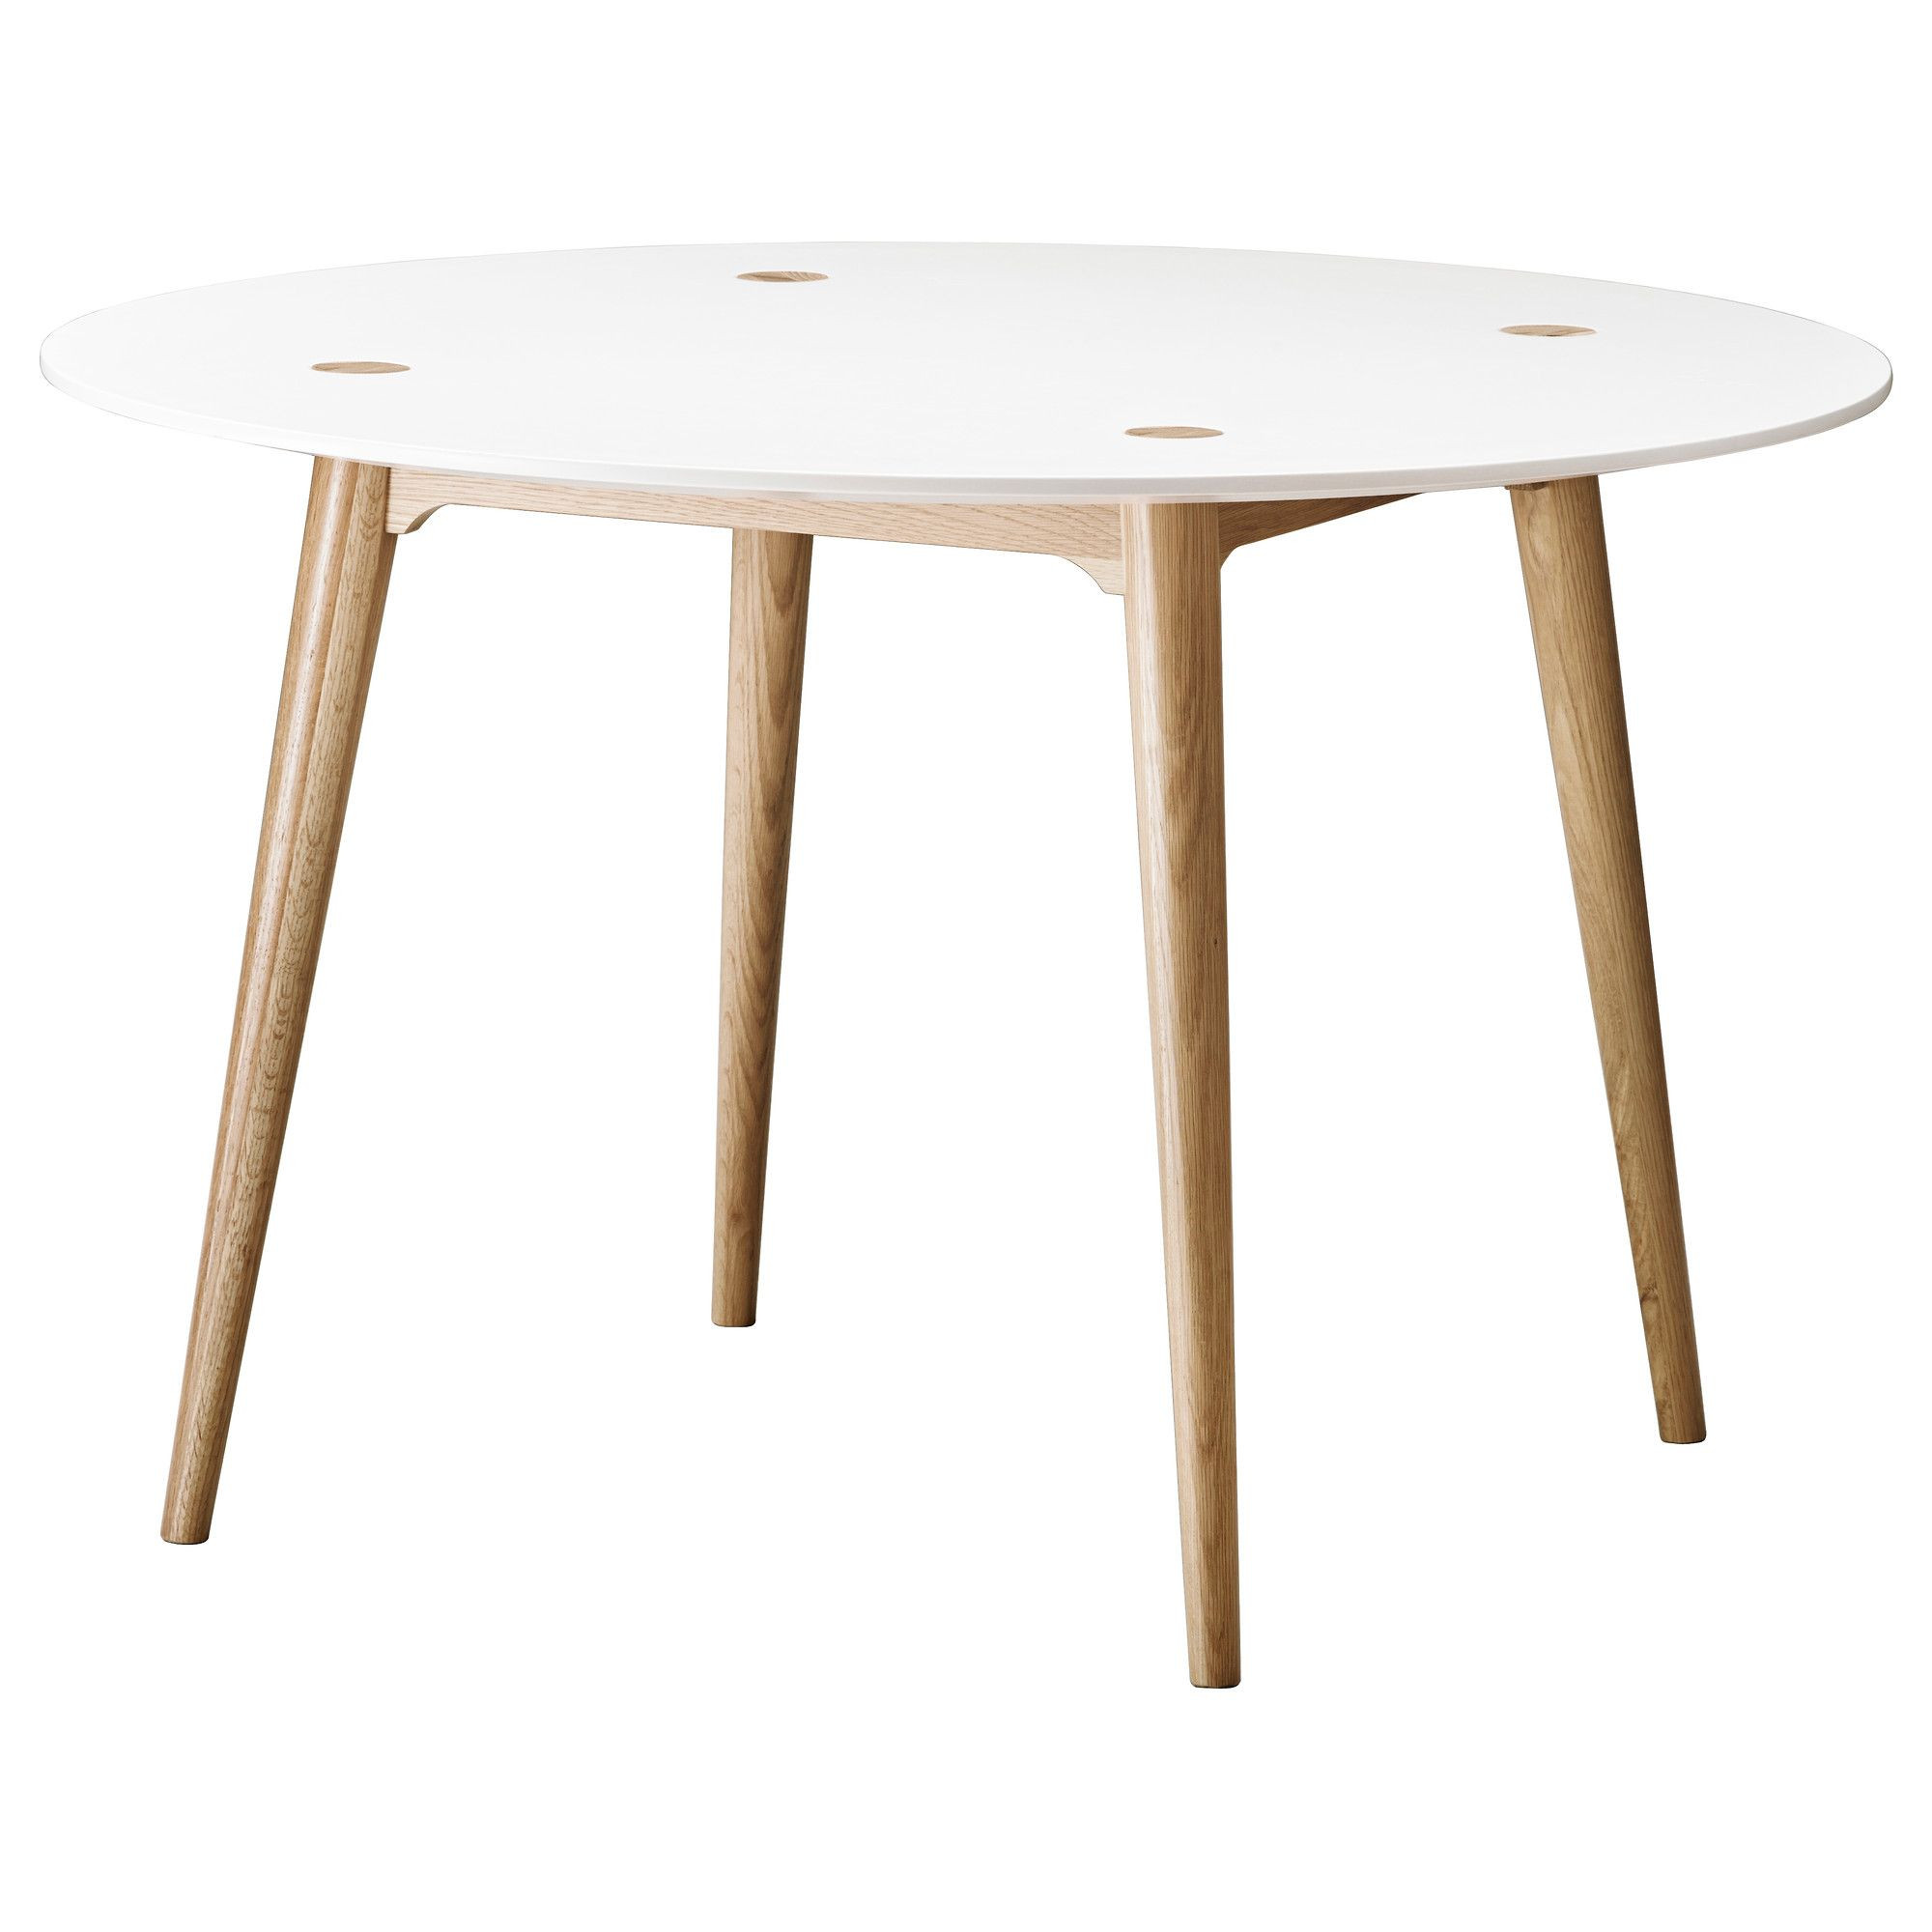 Best ideas about Ikea Round Dining Table . Save or Pin Base for large kitchen table TRENDIG 2013 Dining table Now.